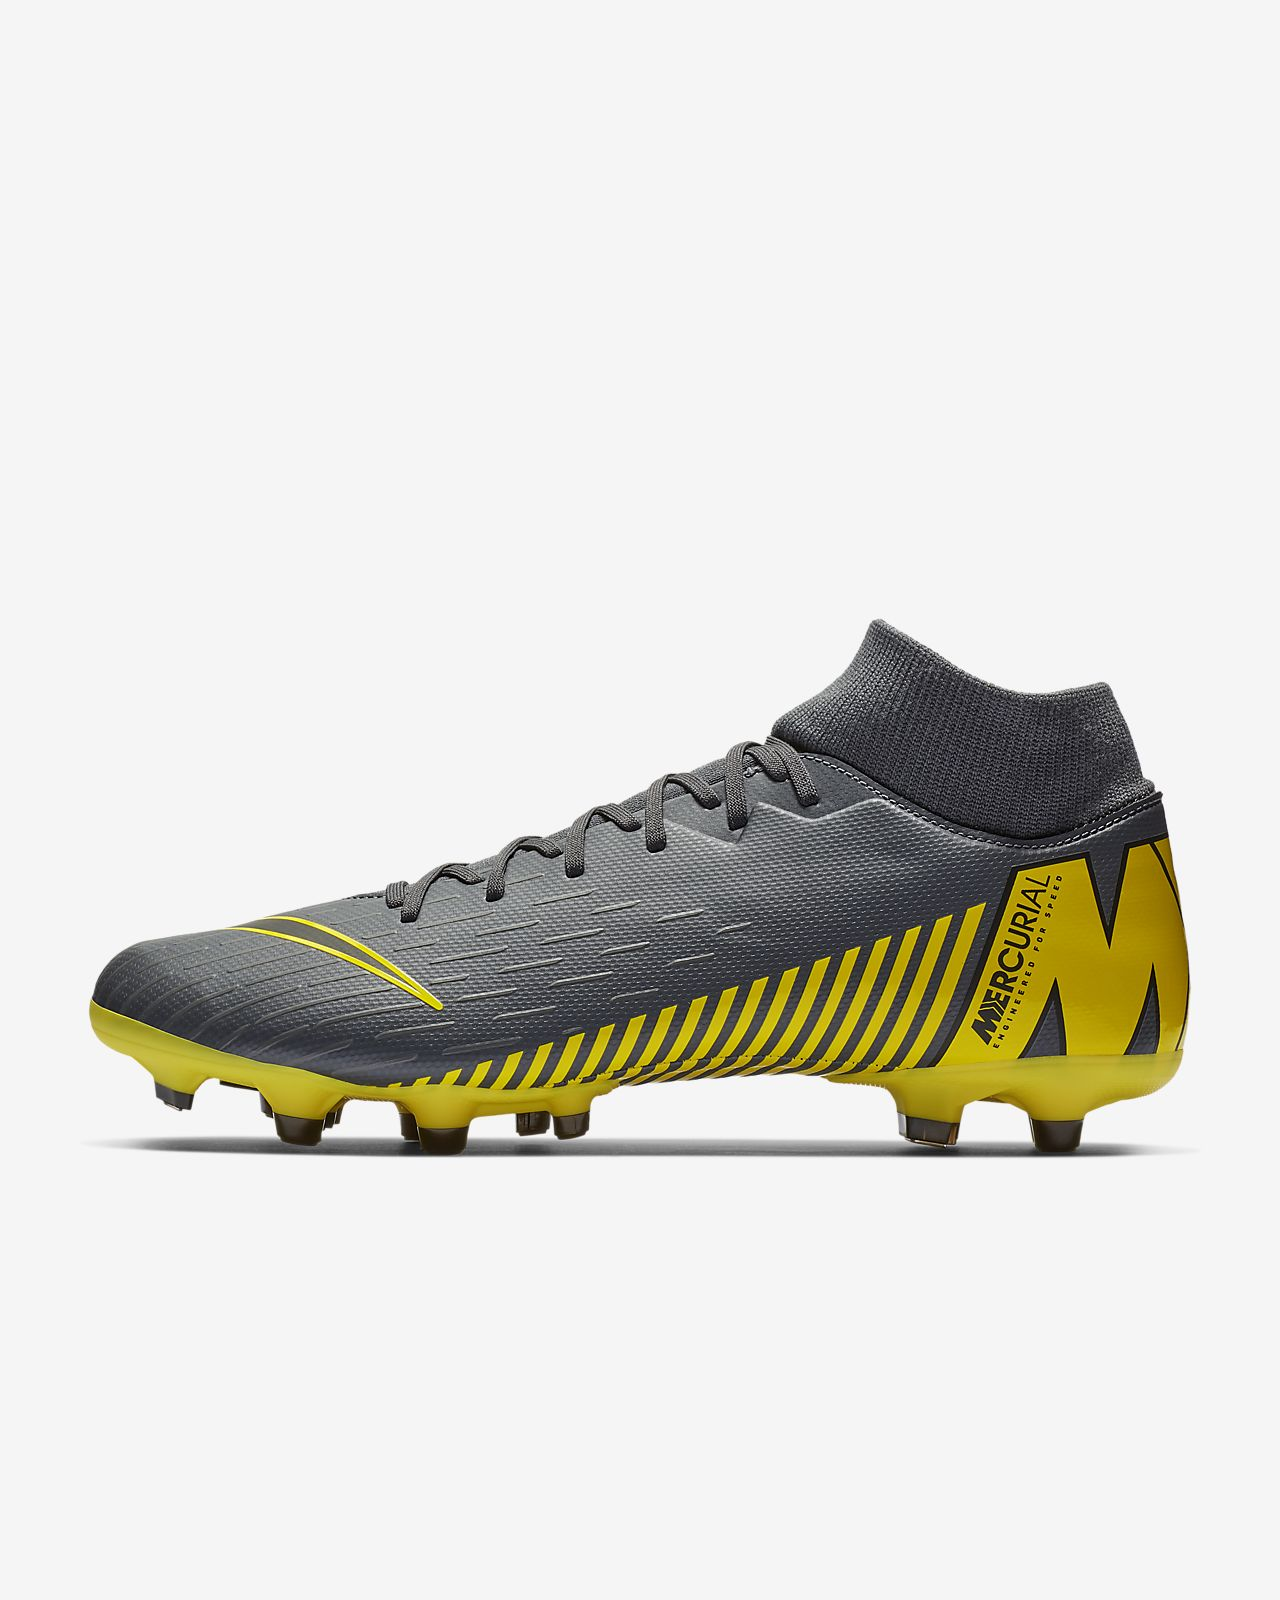 Mg Nike Academy Calcio Superfly Mercurial Scarpa Multiterreno 6 Da qRwxf8